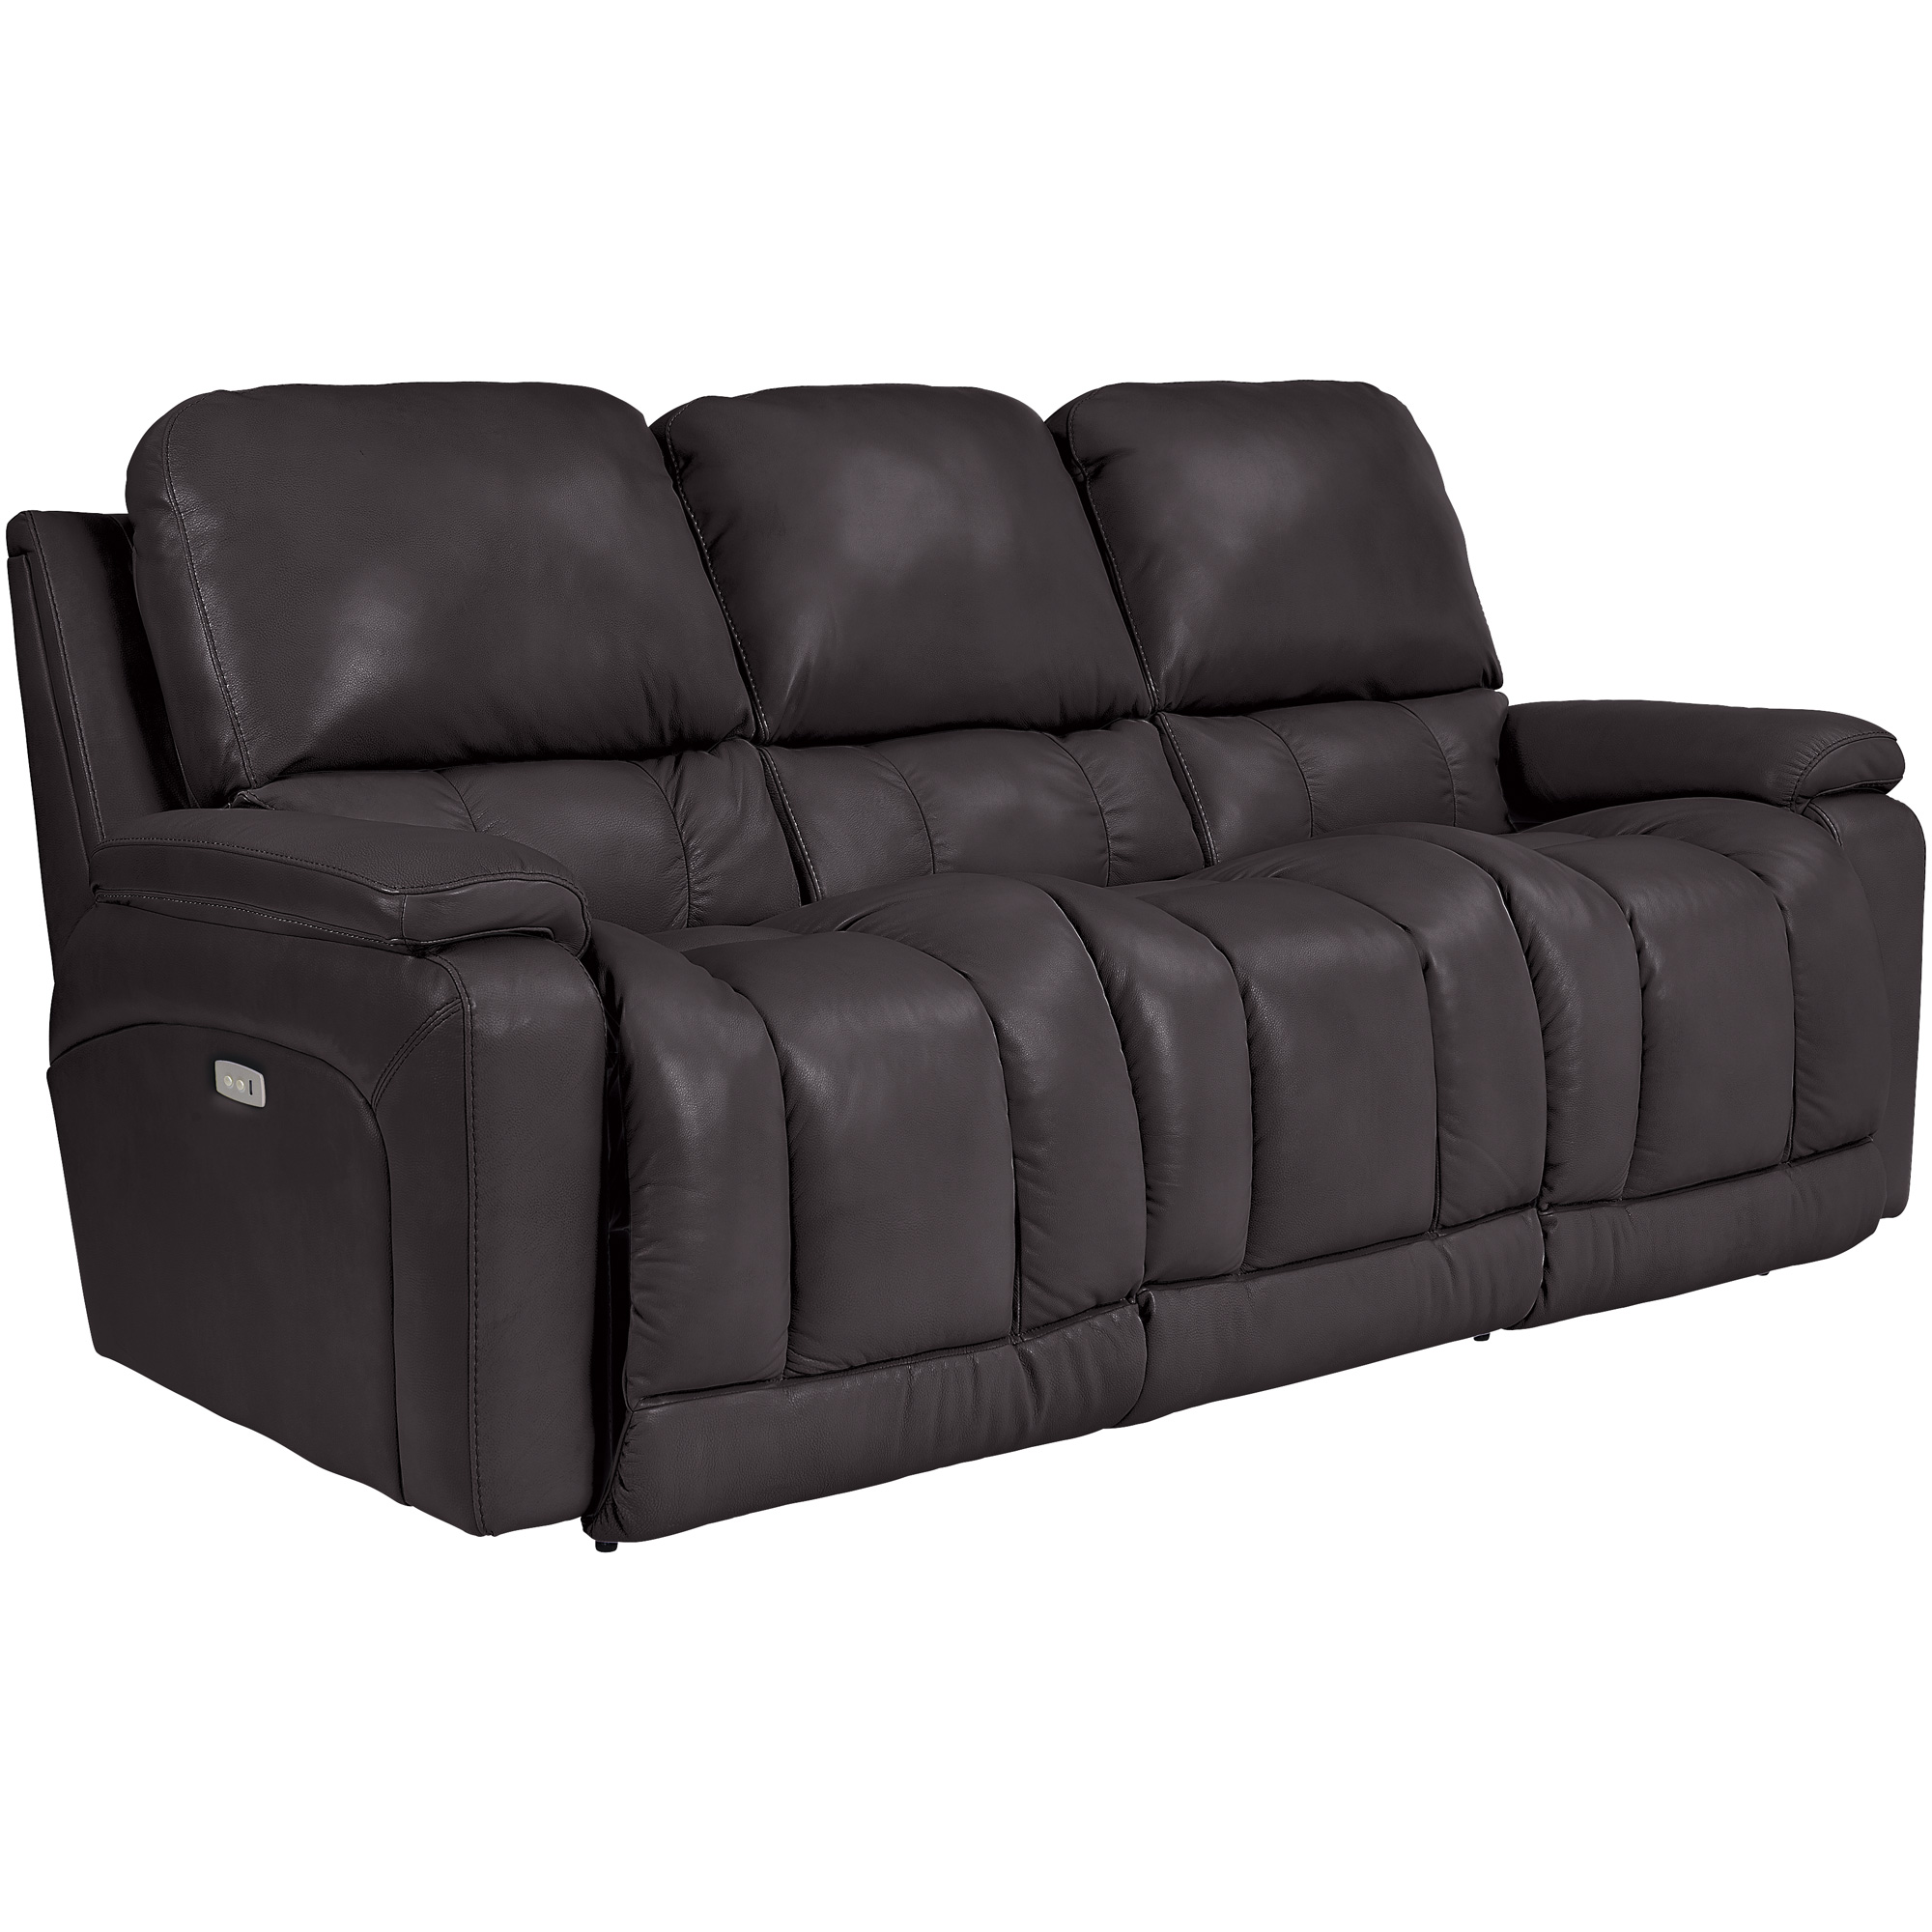 La-Z-Boy | Greyson Chocolate Power Reclining Sofa